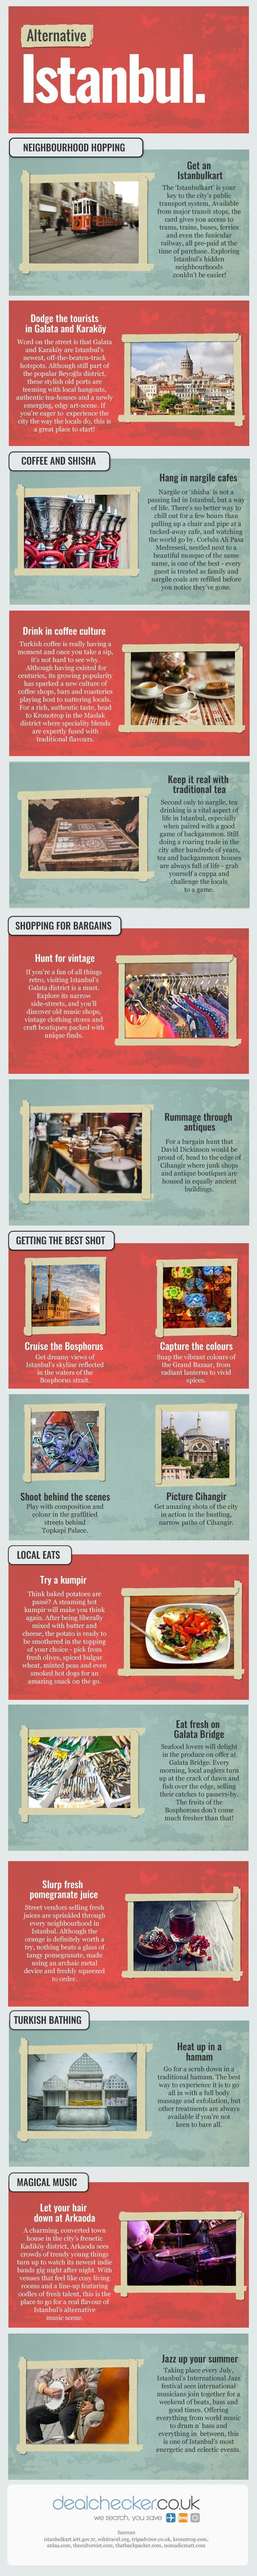 1109 best Infographic images on Pinterest